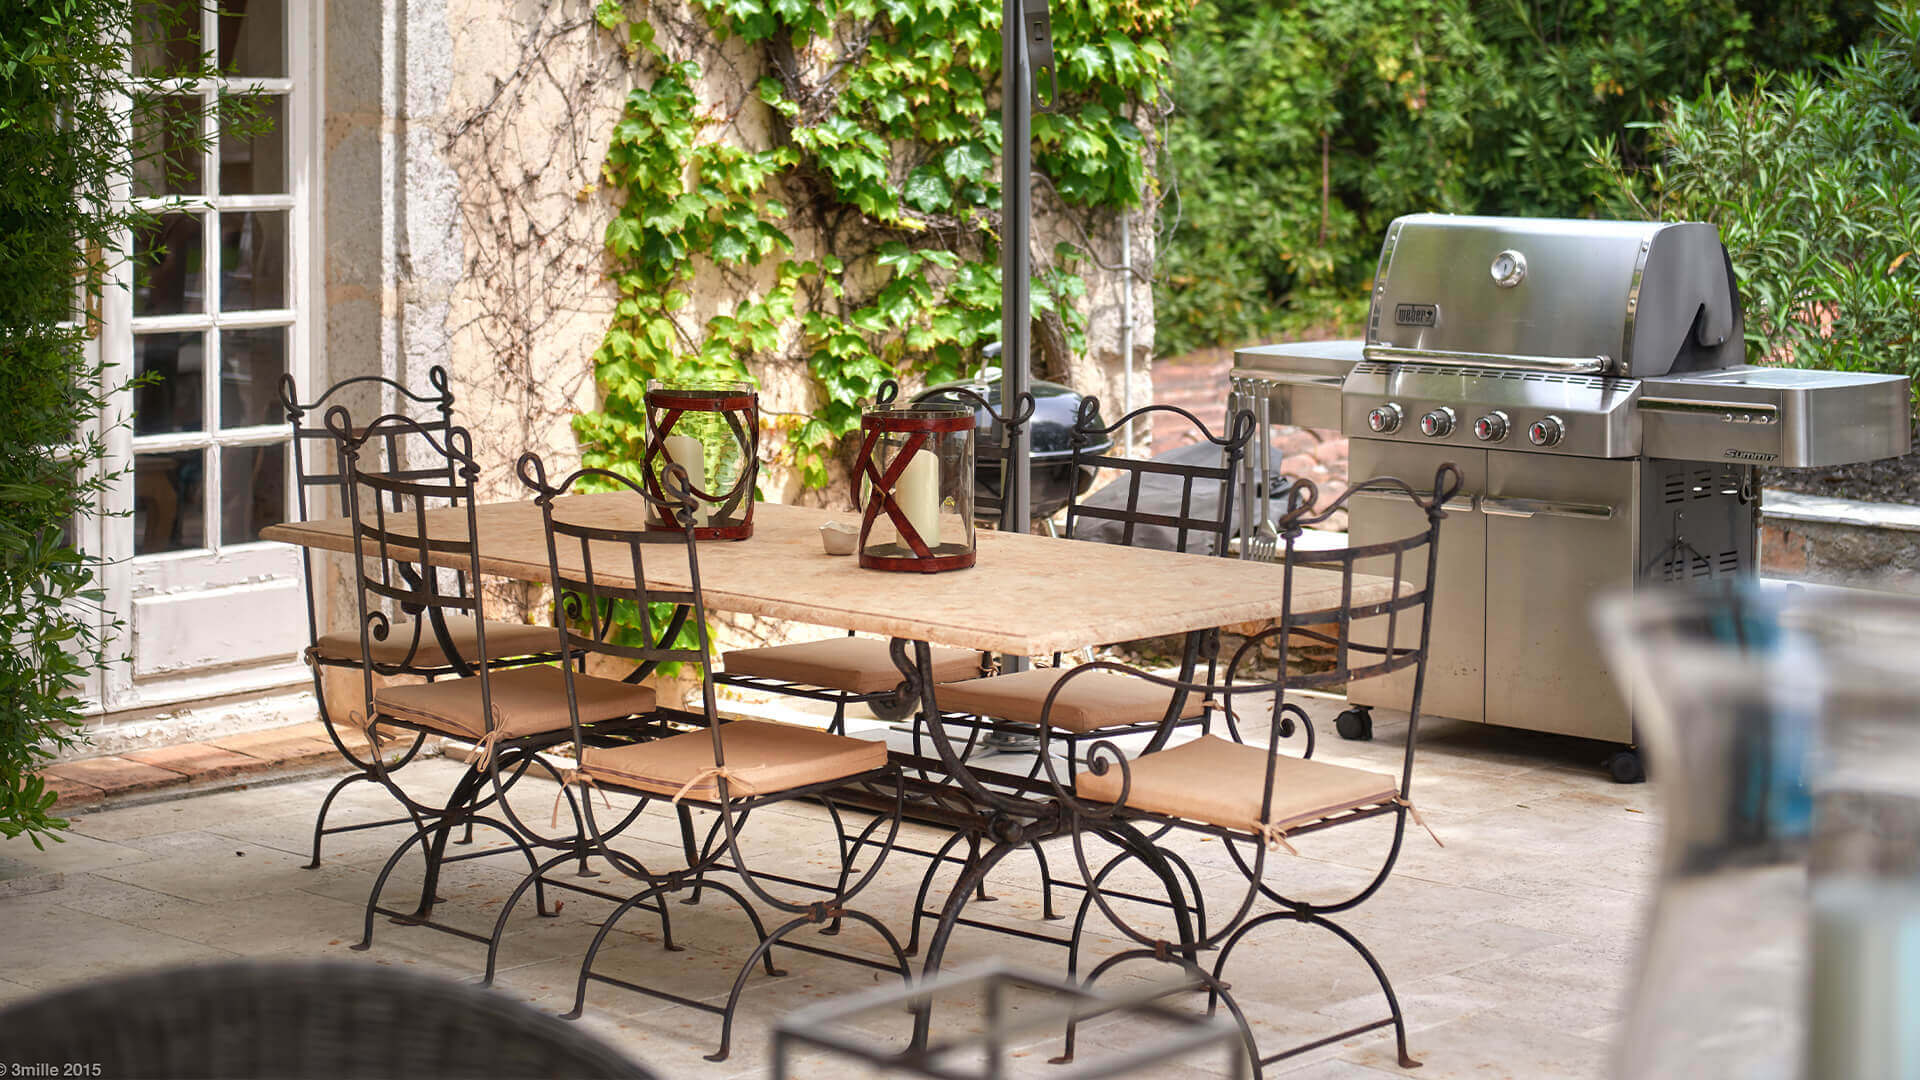 Bastide in Mougins grill and dining area